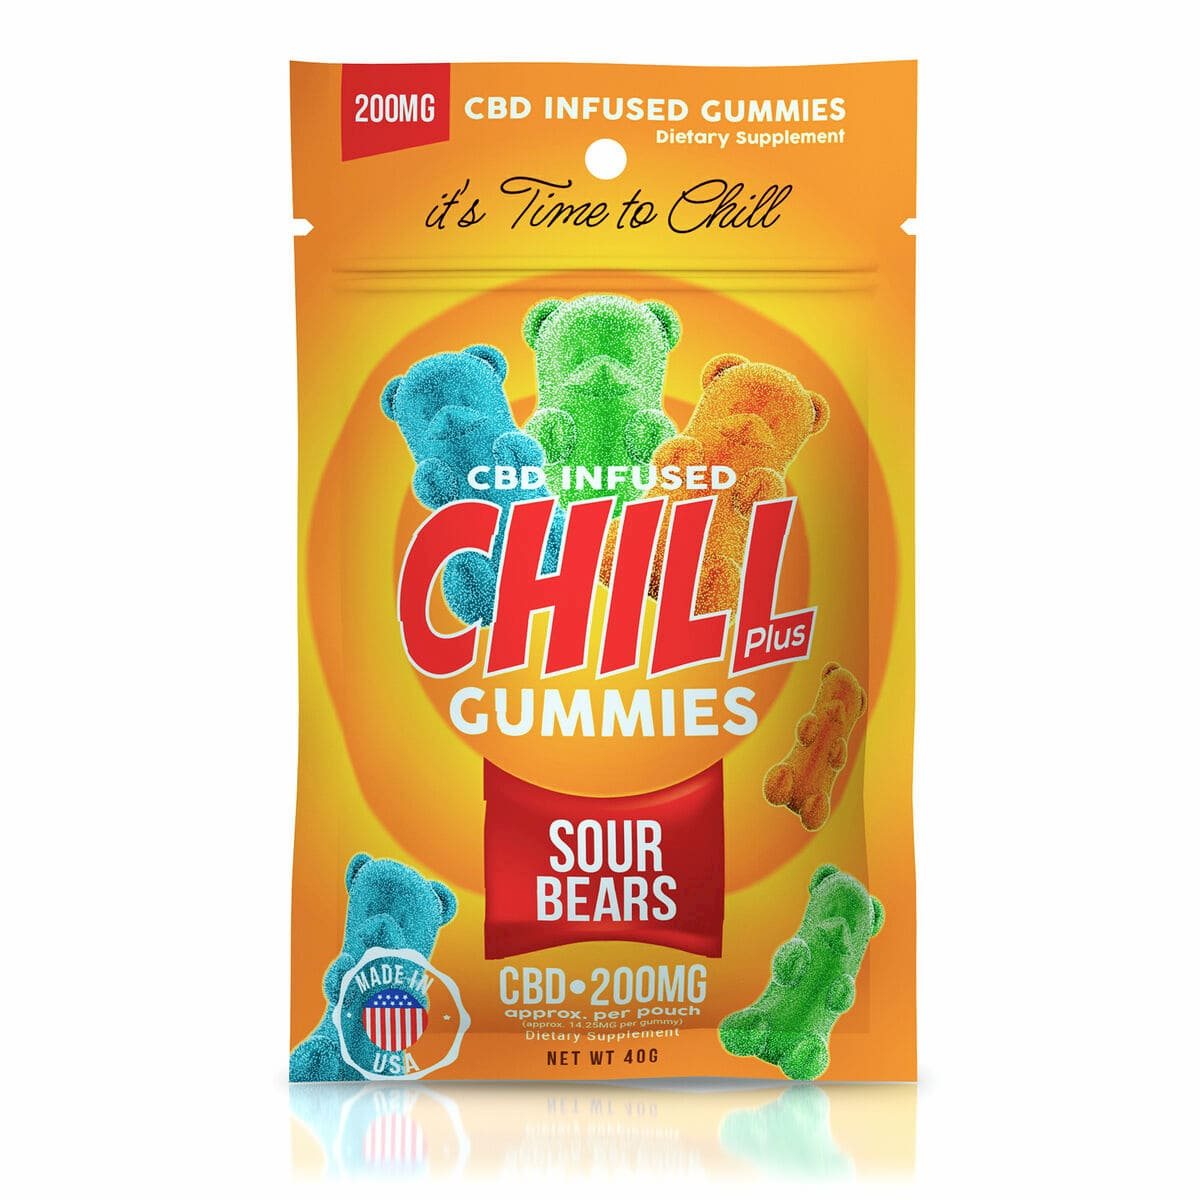 chill-plus-gummies-cbd-infused-sour-bears-200mg